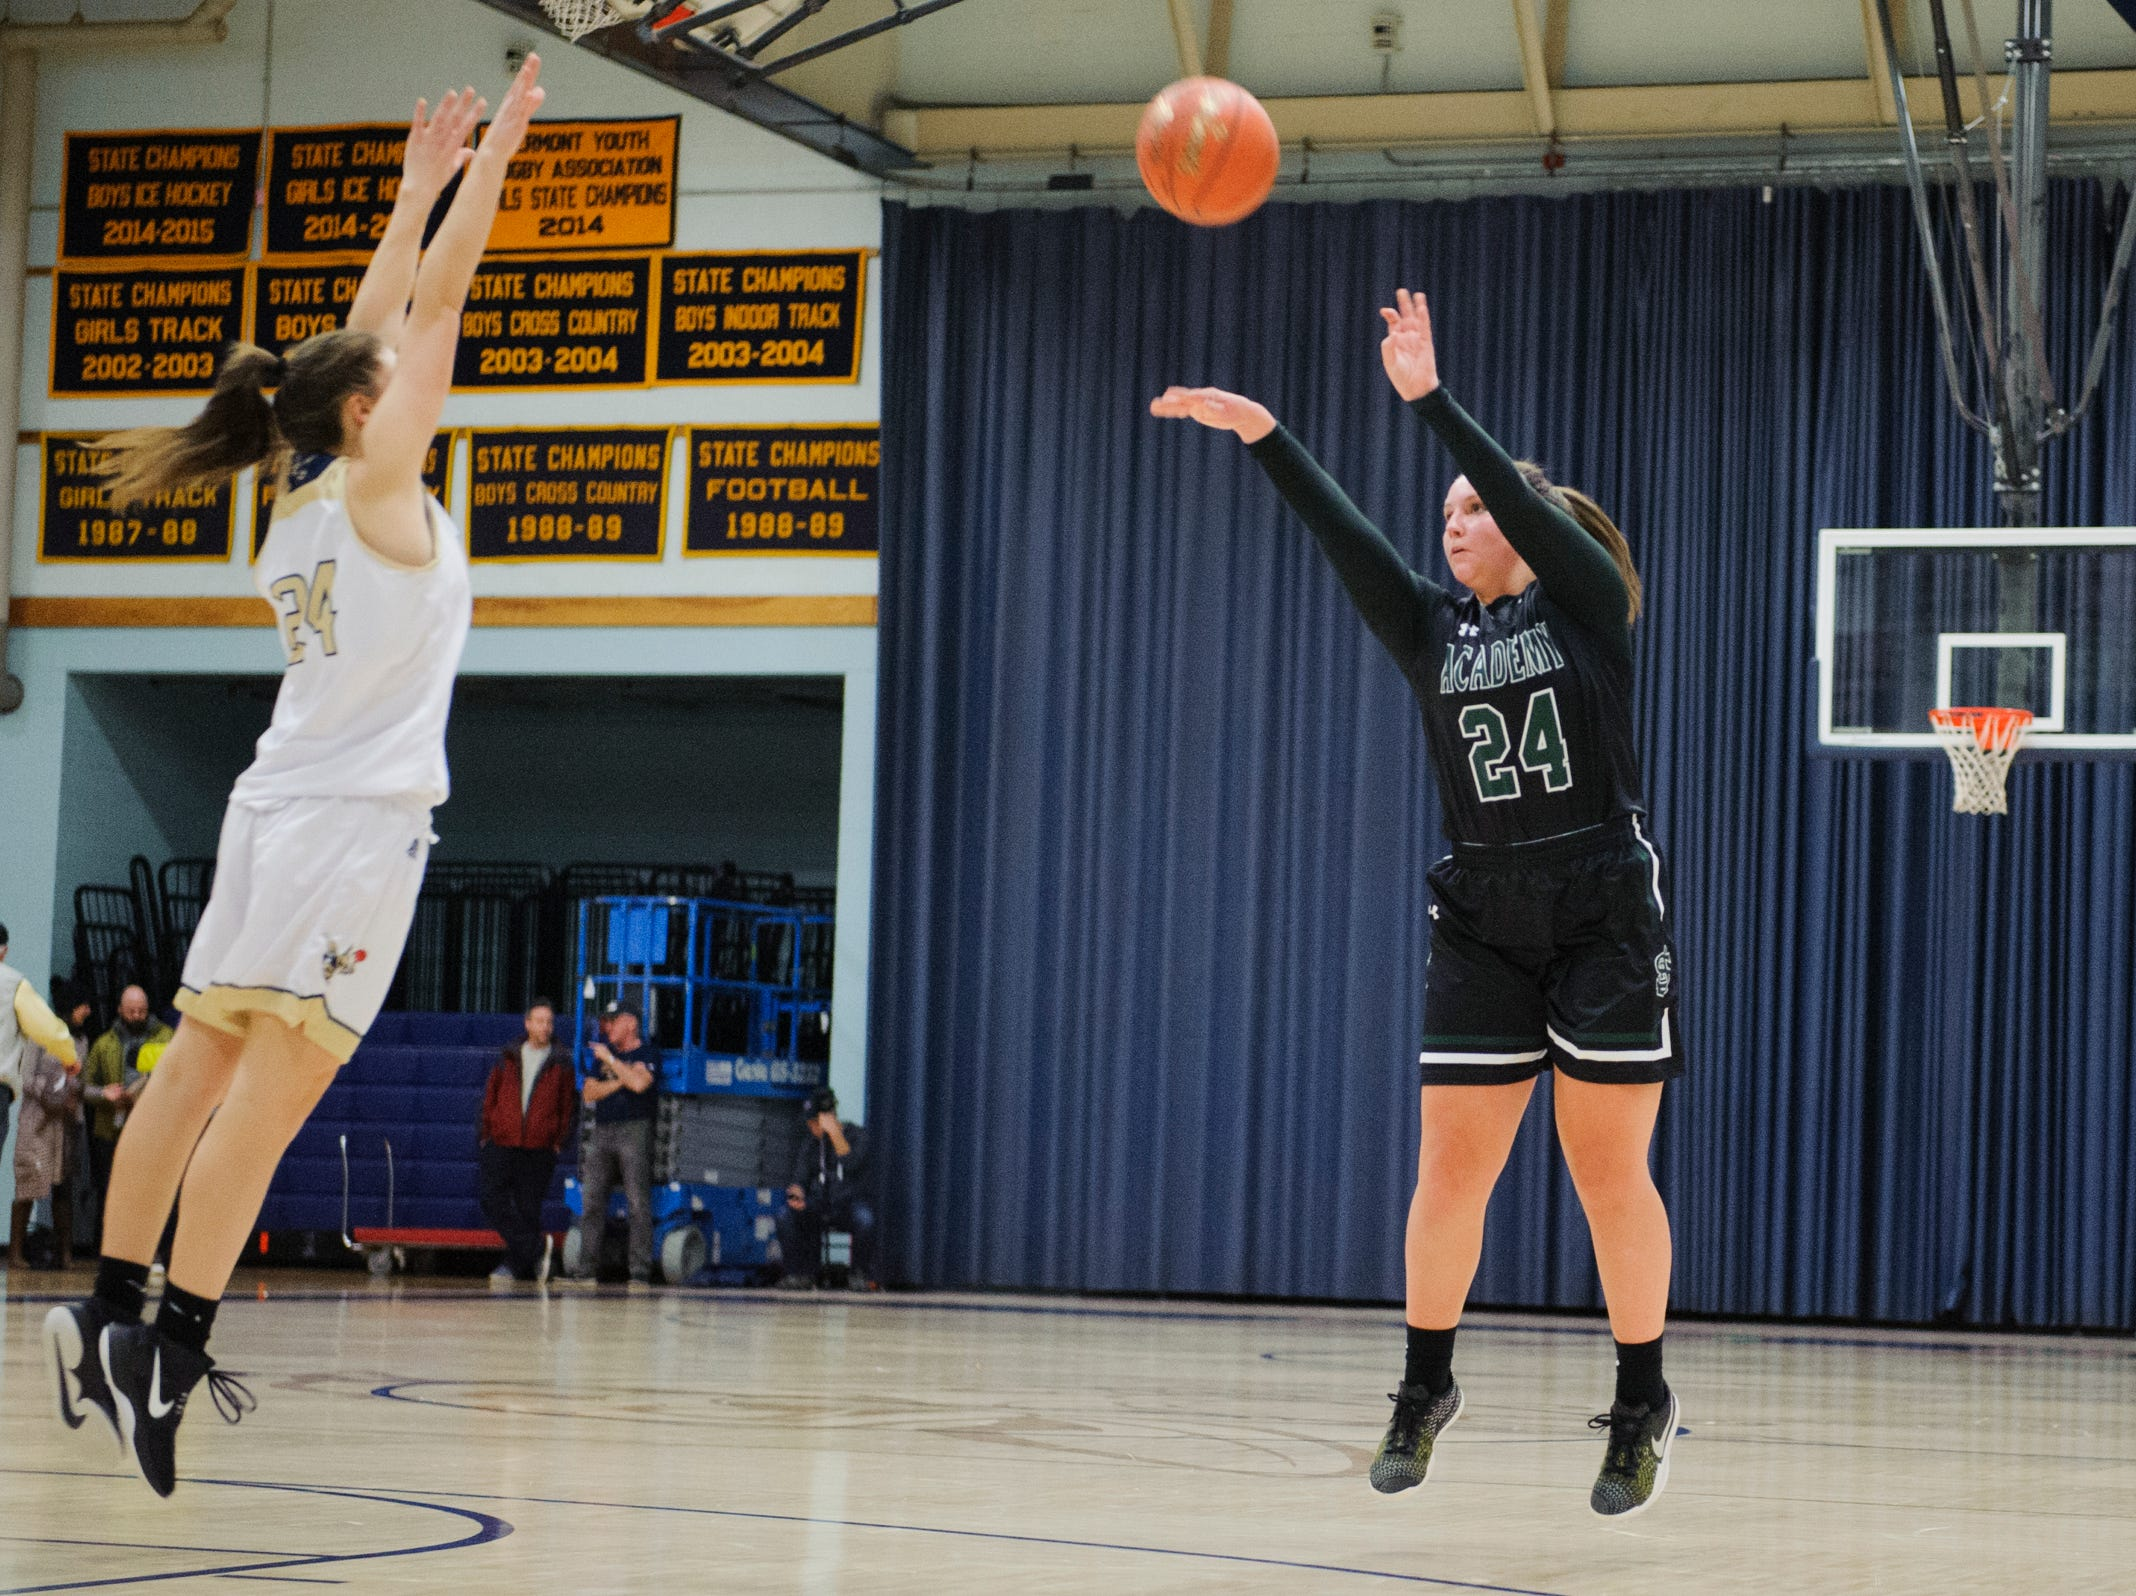 St. Johnsbury's Josie Choiniere (24) shoots a three pointer during the girls basketball game between the St. Johnsbury Hilltoppers and the Essex Hornets at Essex High School on Thursday night January 17, 2019 in Essex.